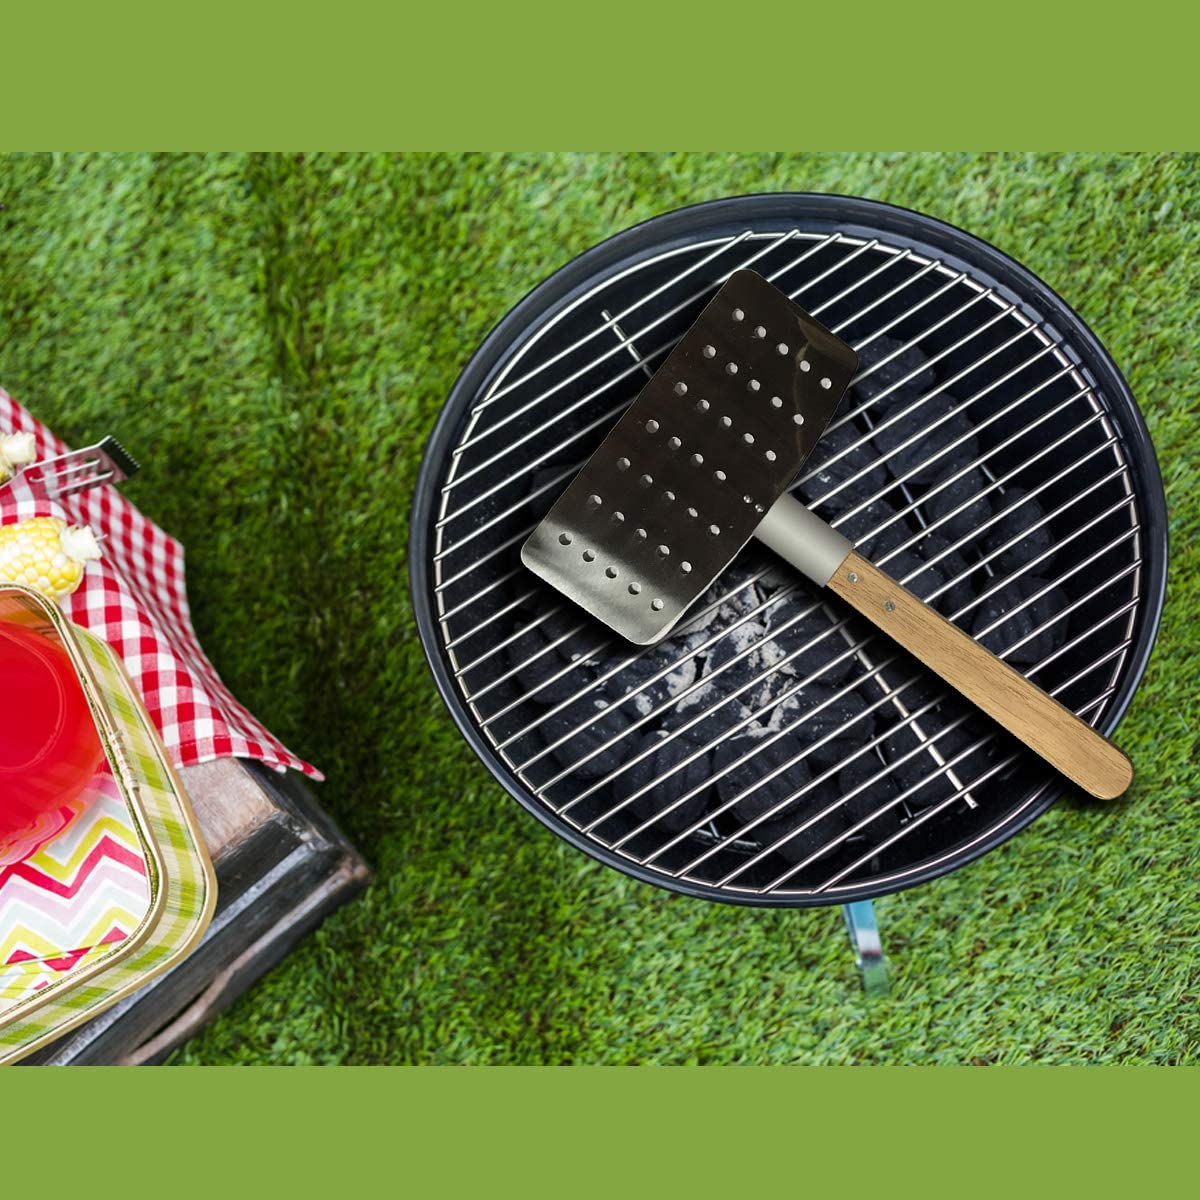 Large Stainless Steel Spatula for Grill Heavy Duty BBQ Turner Spatula Barbeque Stainless Steel Spatula with Wooden Handle Enhance Frying /& Grilling Barbecue Utensil Ideal for Turning /& Flipping